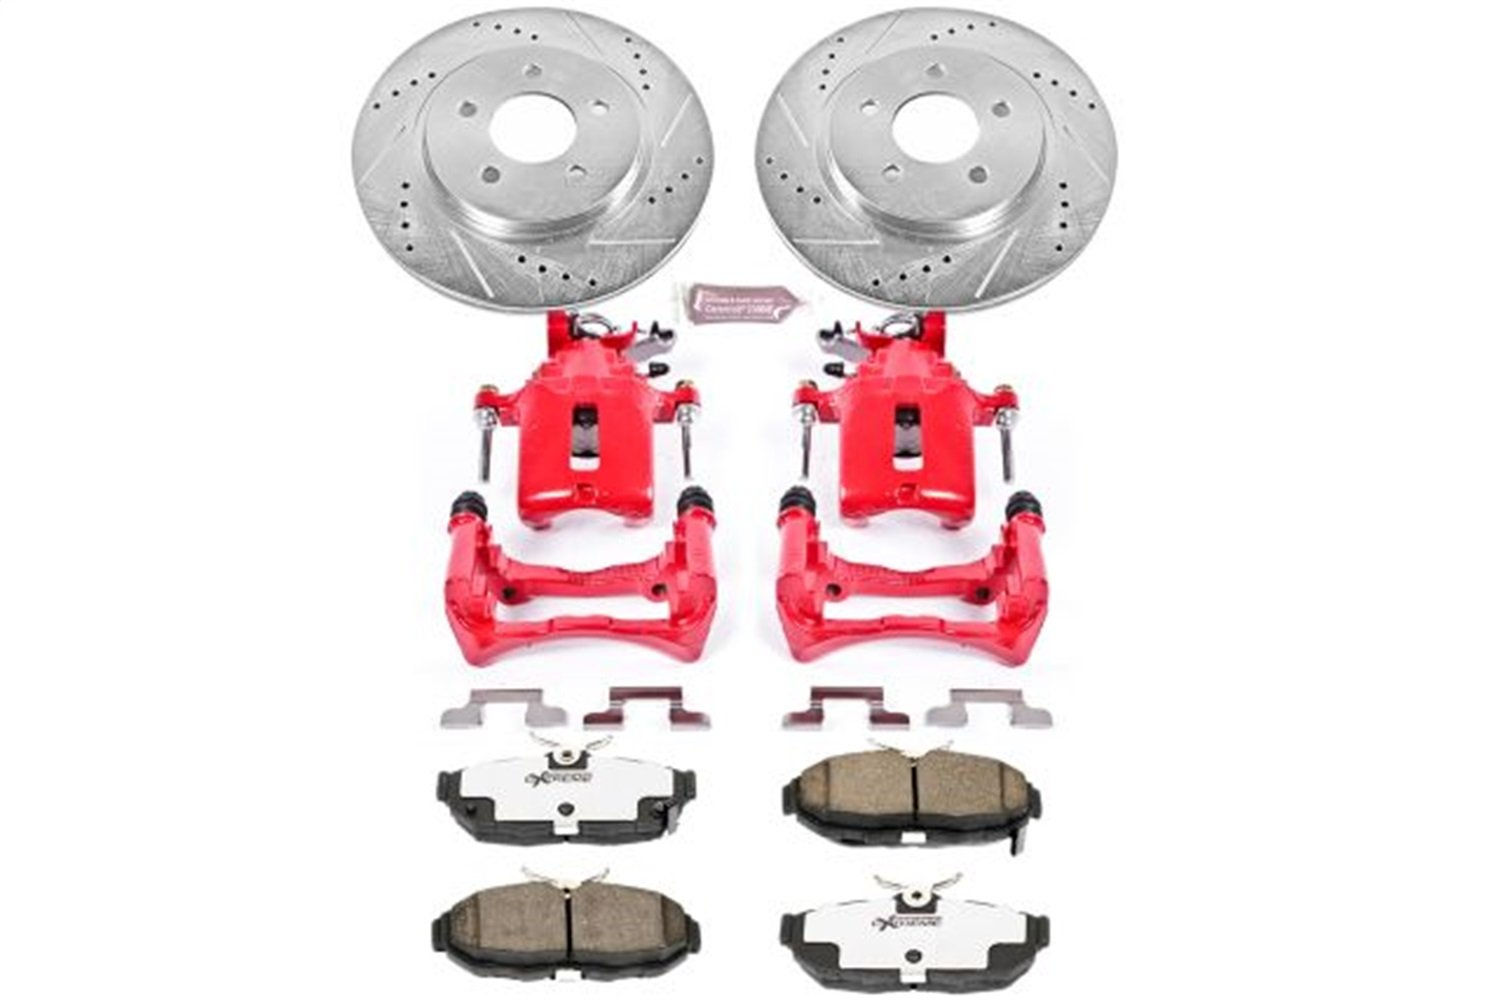 Power Stop KC4749-26 Z26 Street Warrior Brake Kit with Powder Coated Caliper